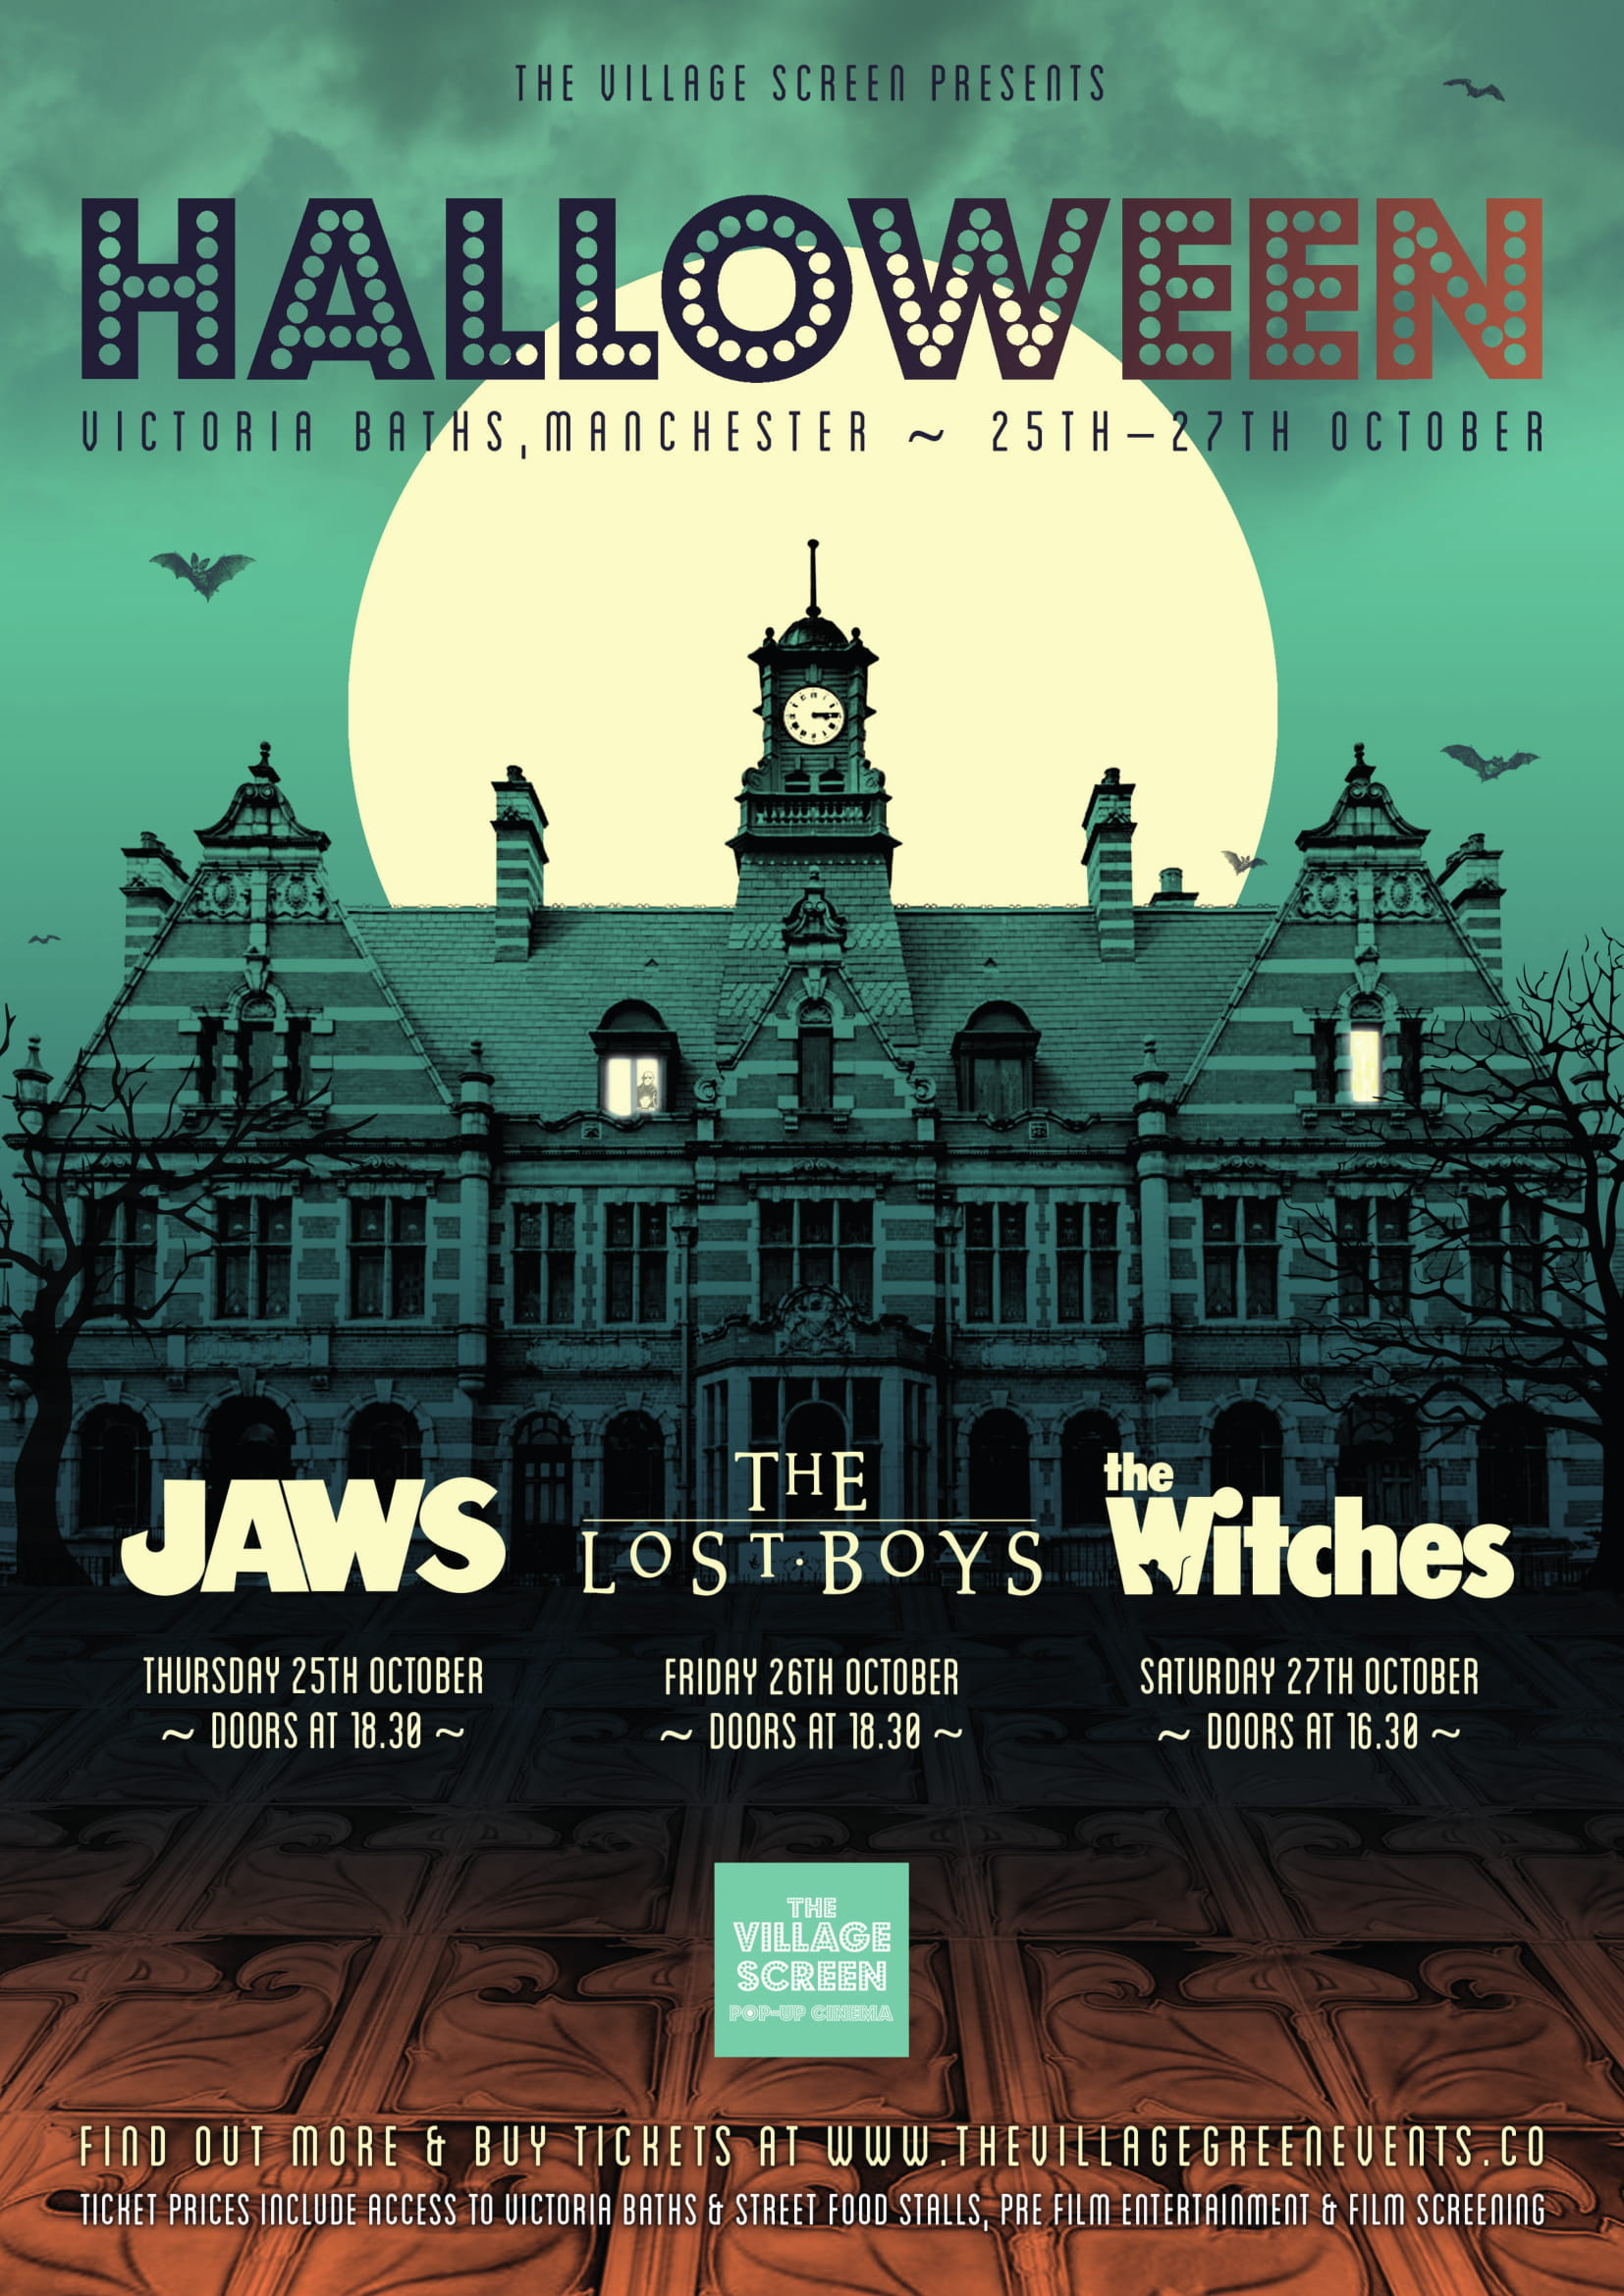 Pop-up cinema to bring the ultimate Haloween experience to Victoria Baths